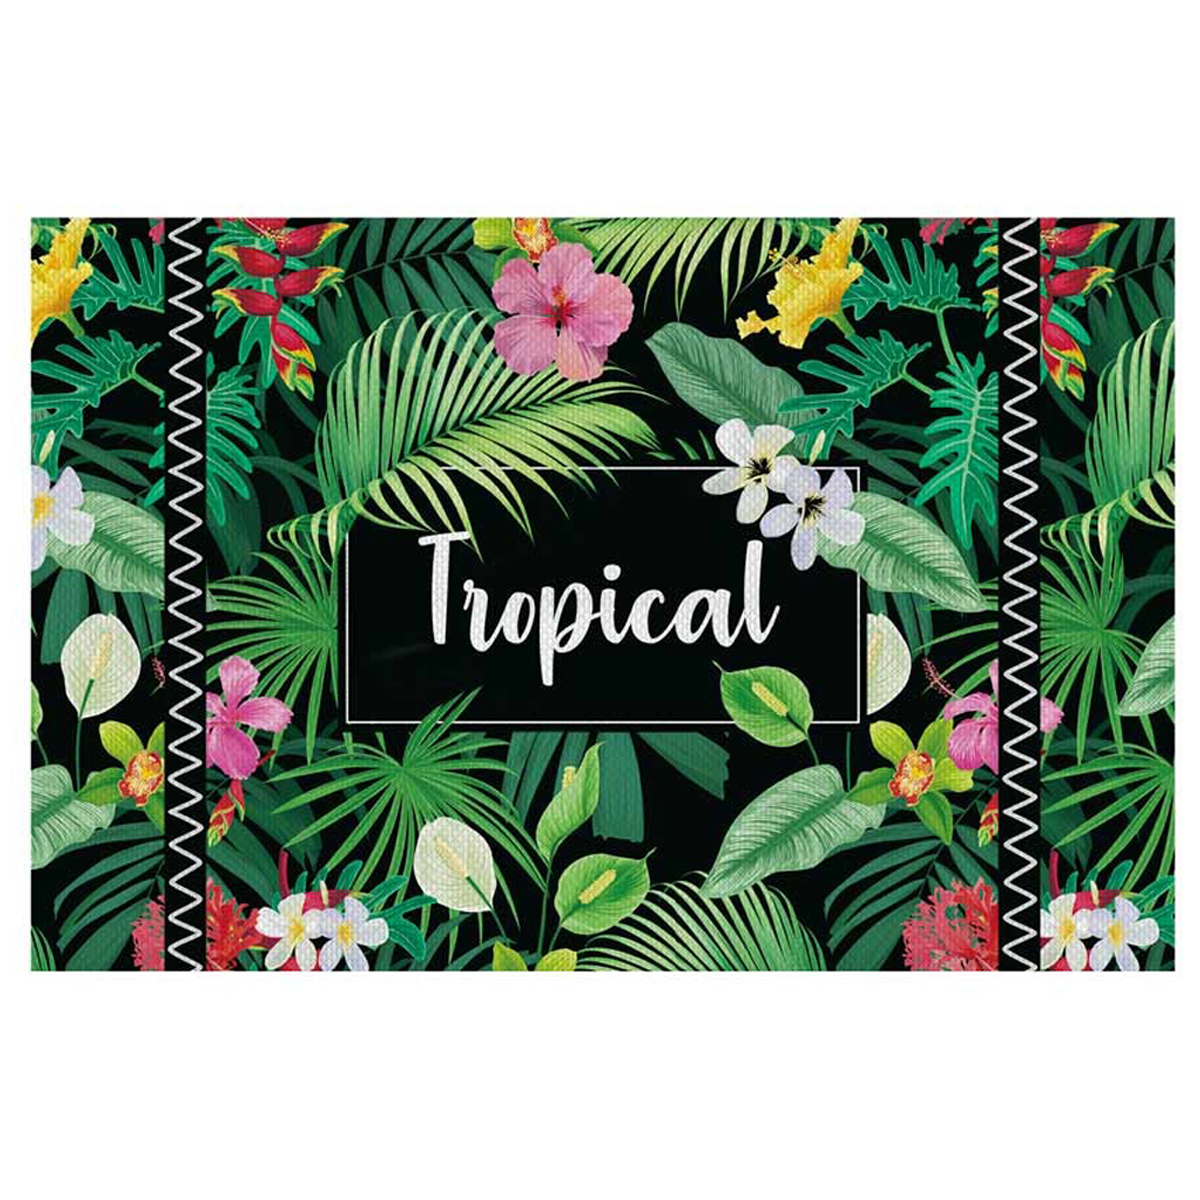 Set de table plastifié \'Tropical\' vert multicolore (Tropical) - 43x28 cm - [Q3242]